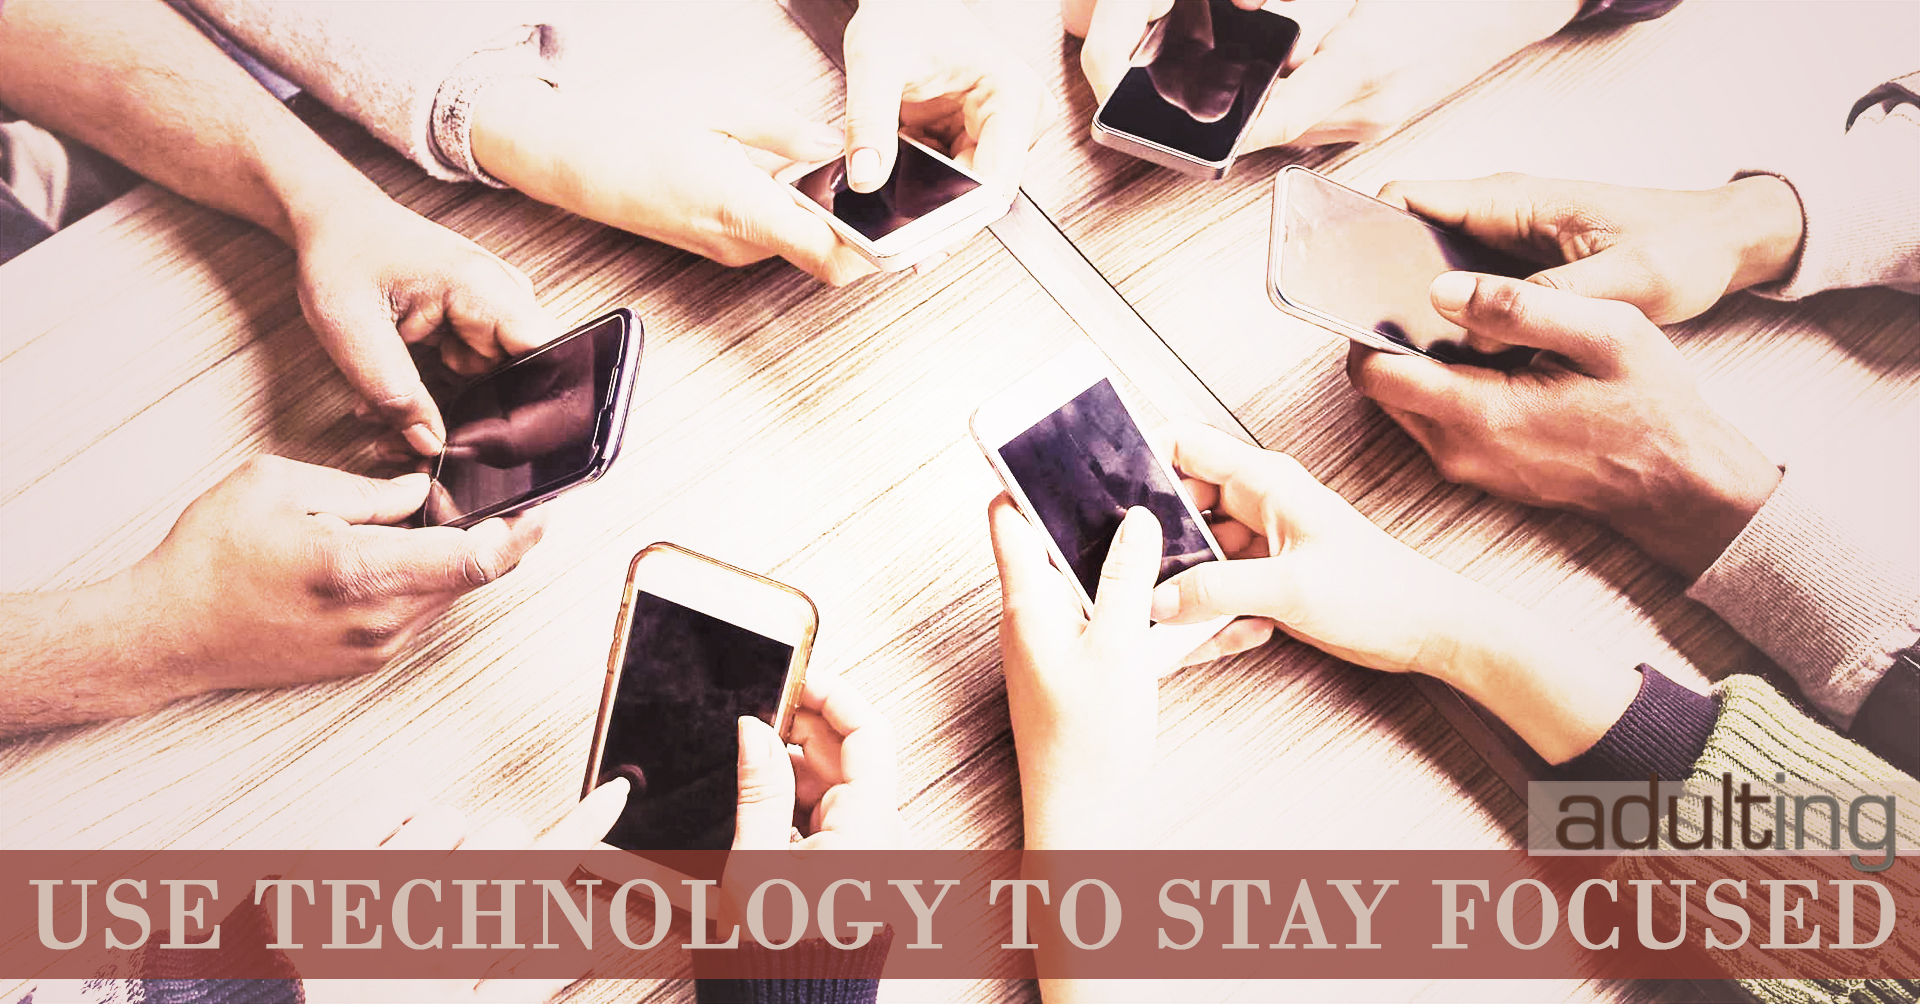 Use Technology to Stay Focused